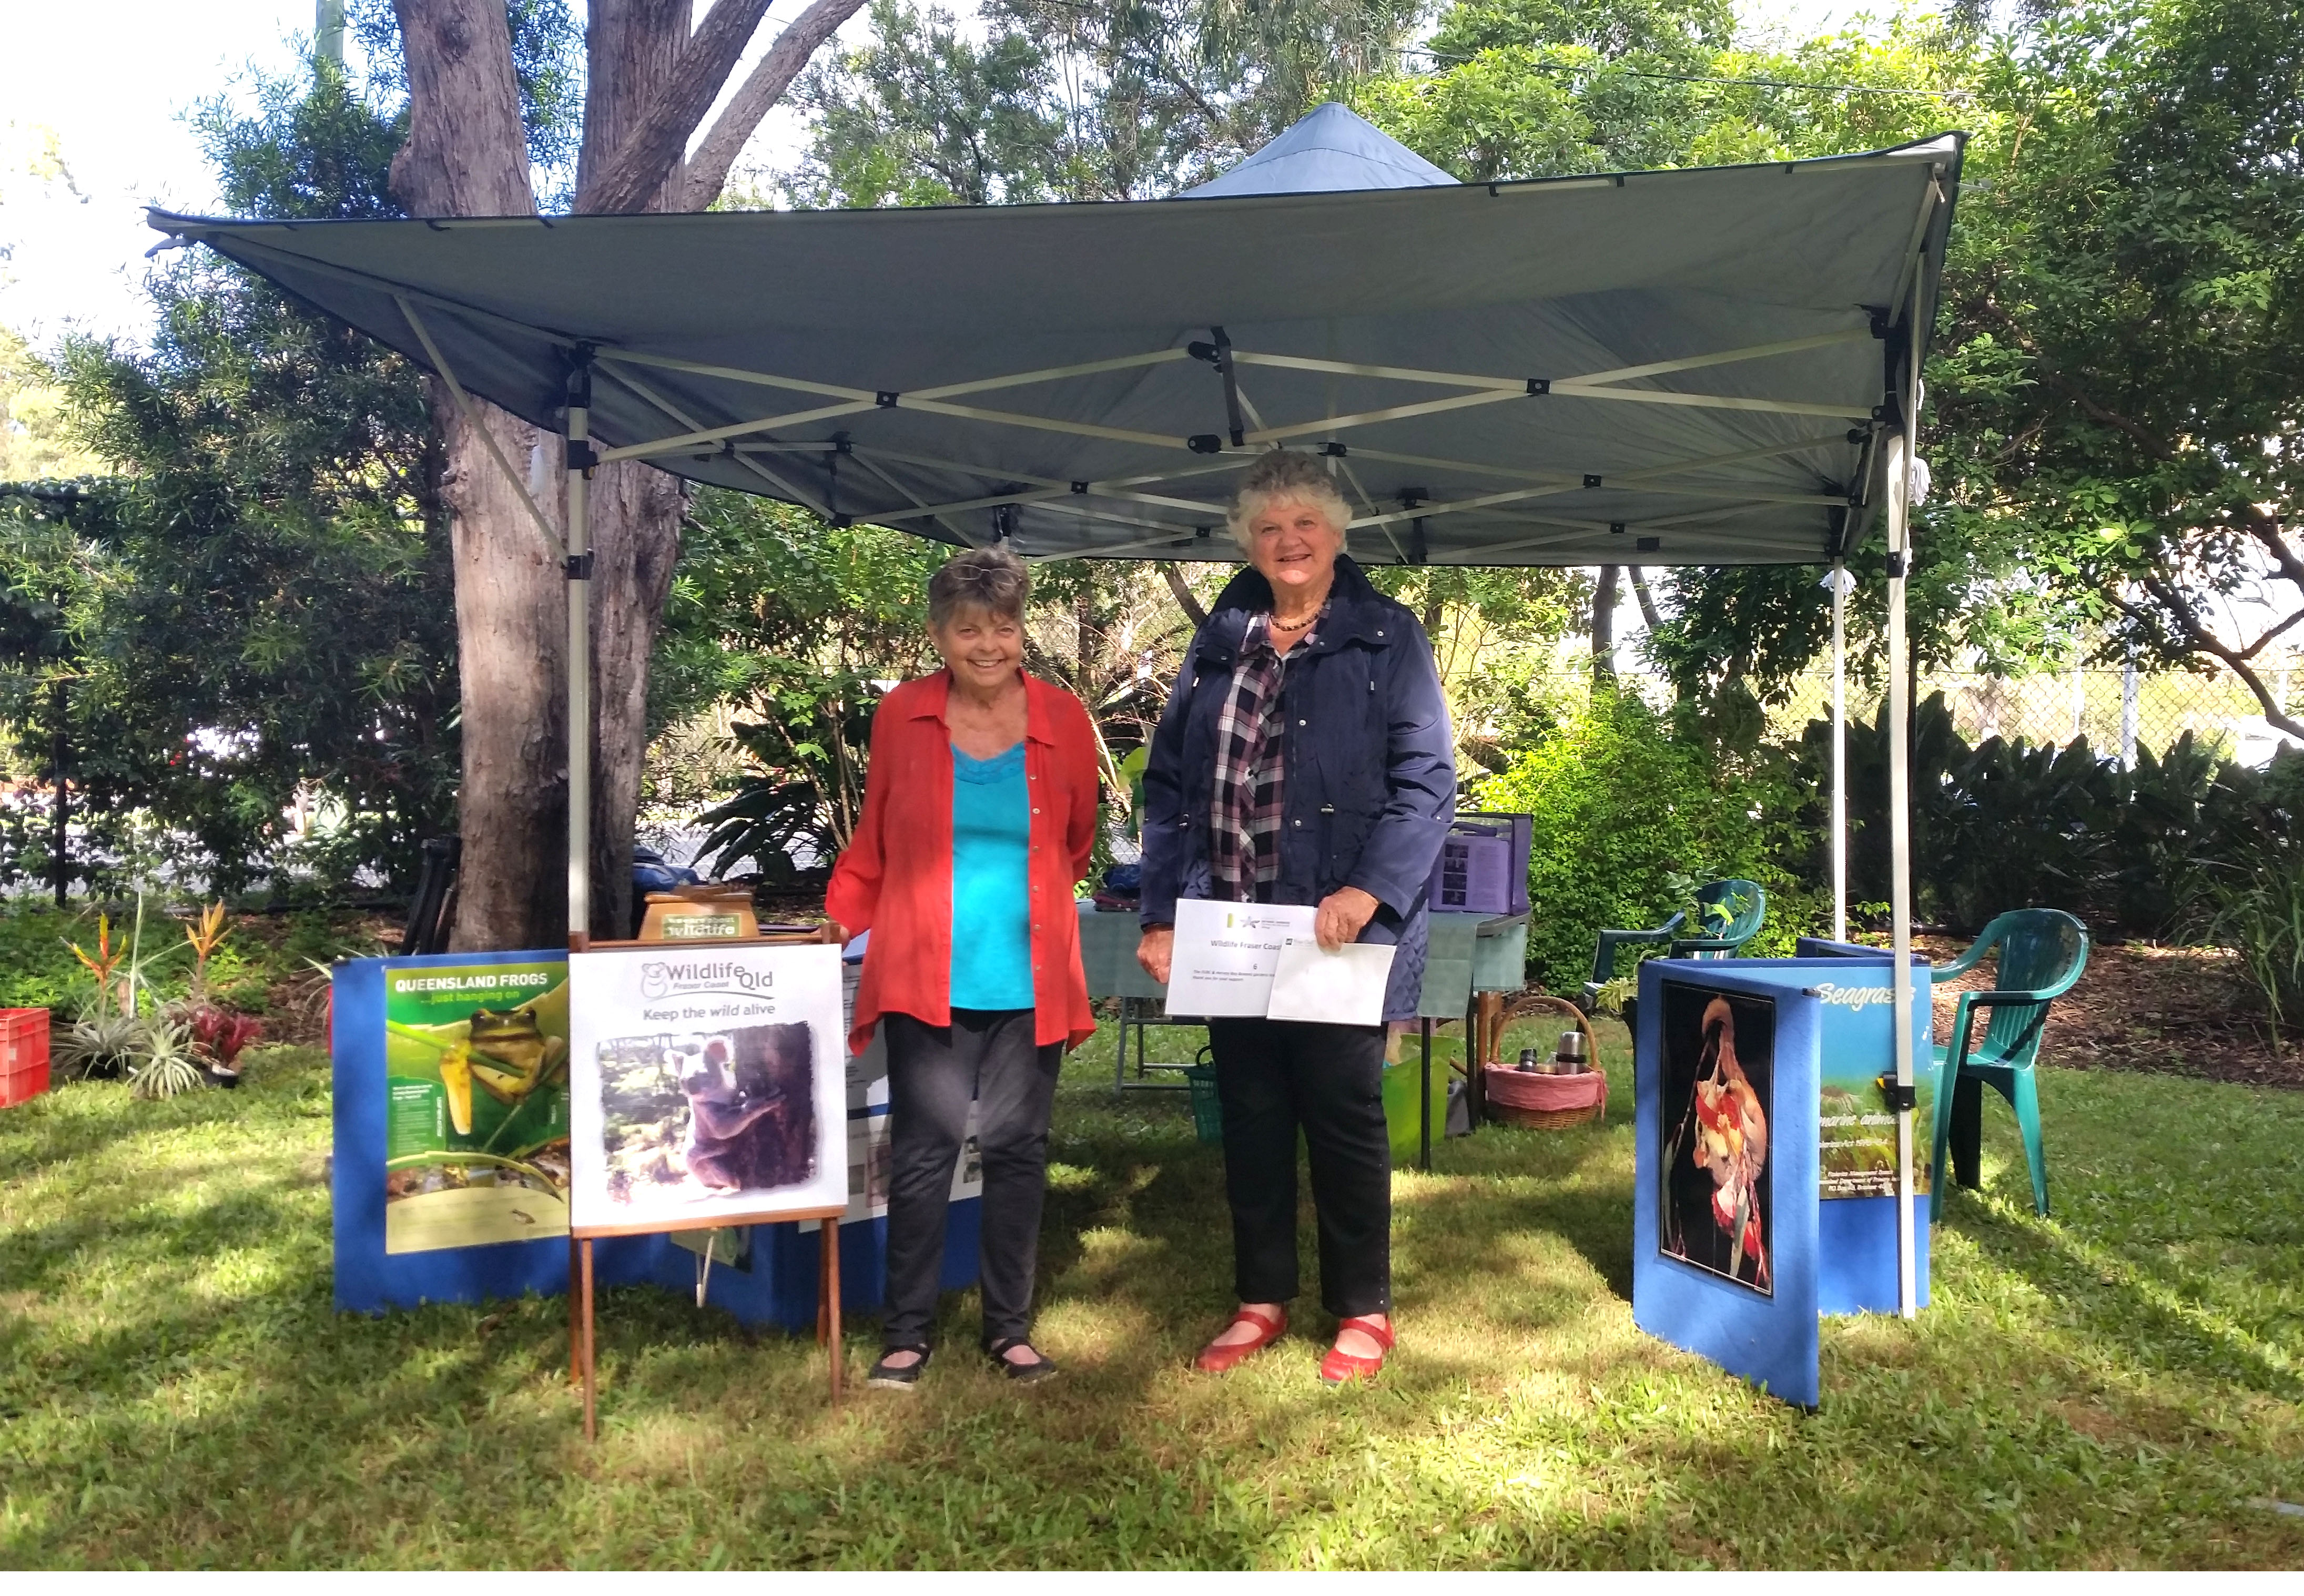 Member Diane Chistensen and President Audrey Sorensen with the Botanic Gardens Open Day stall in May.